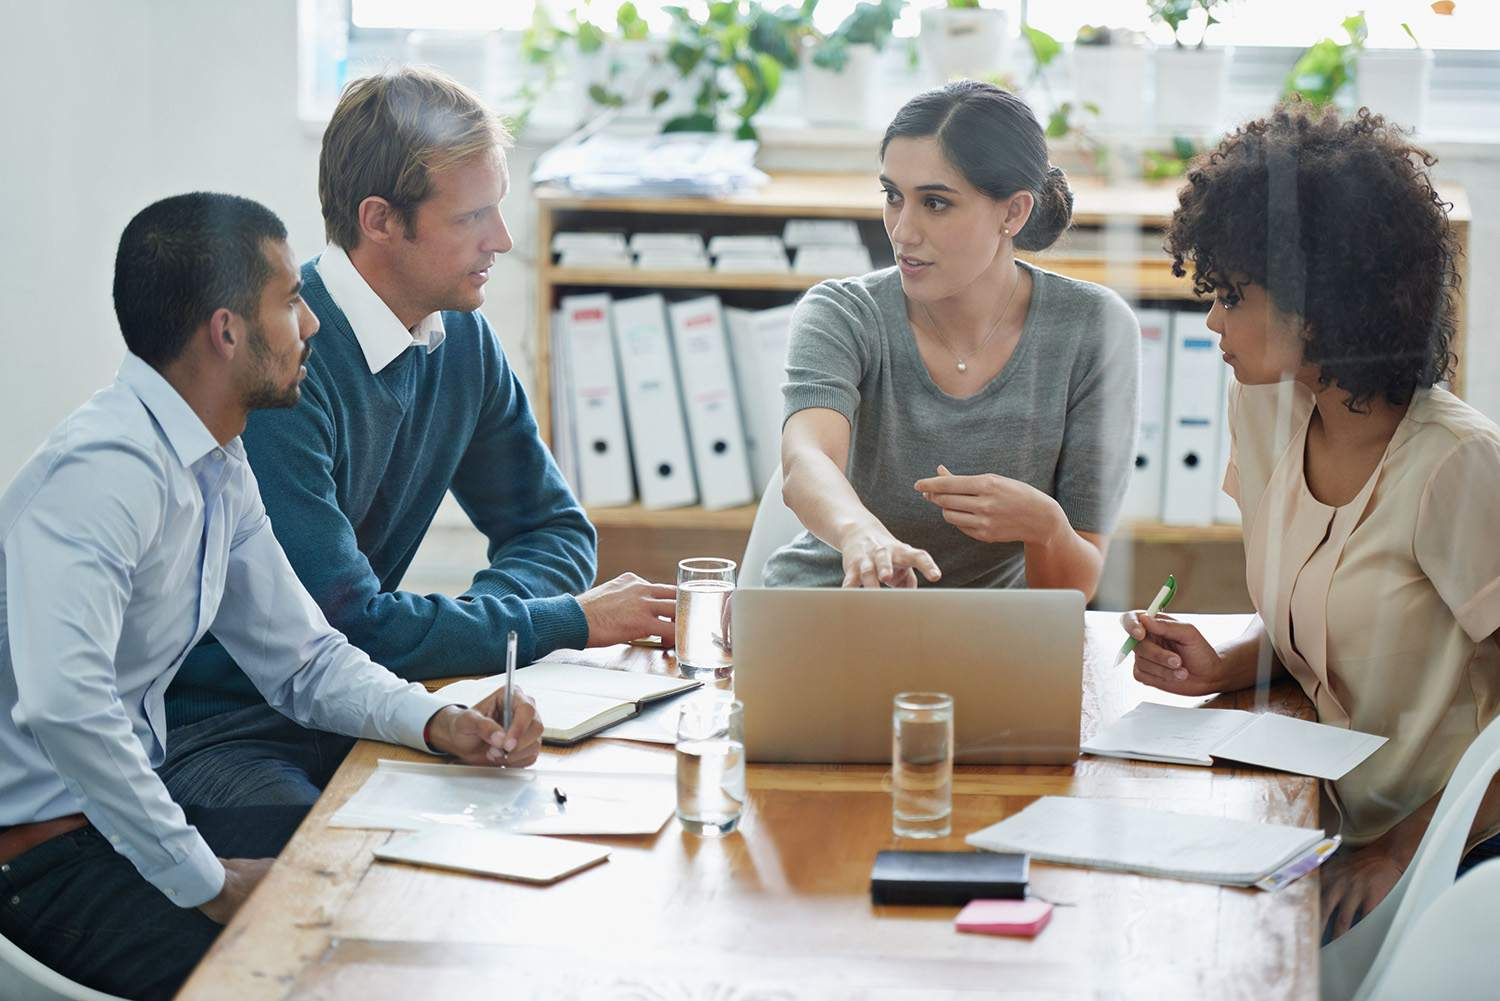 Woman leading a training meeting in an office